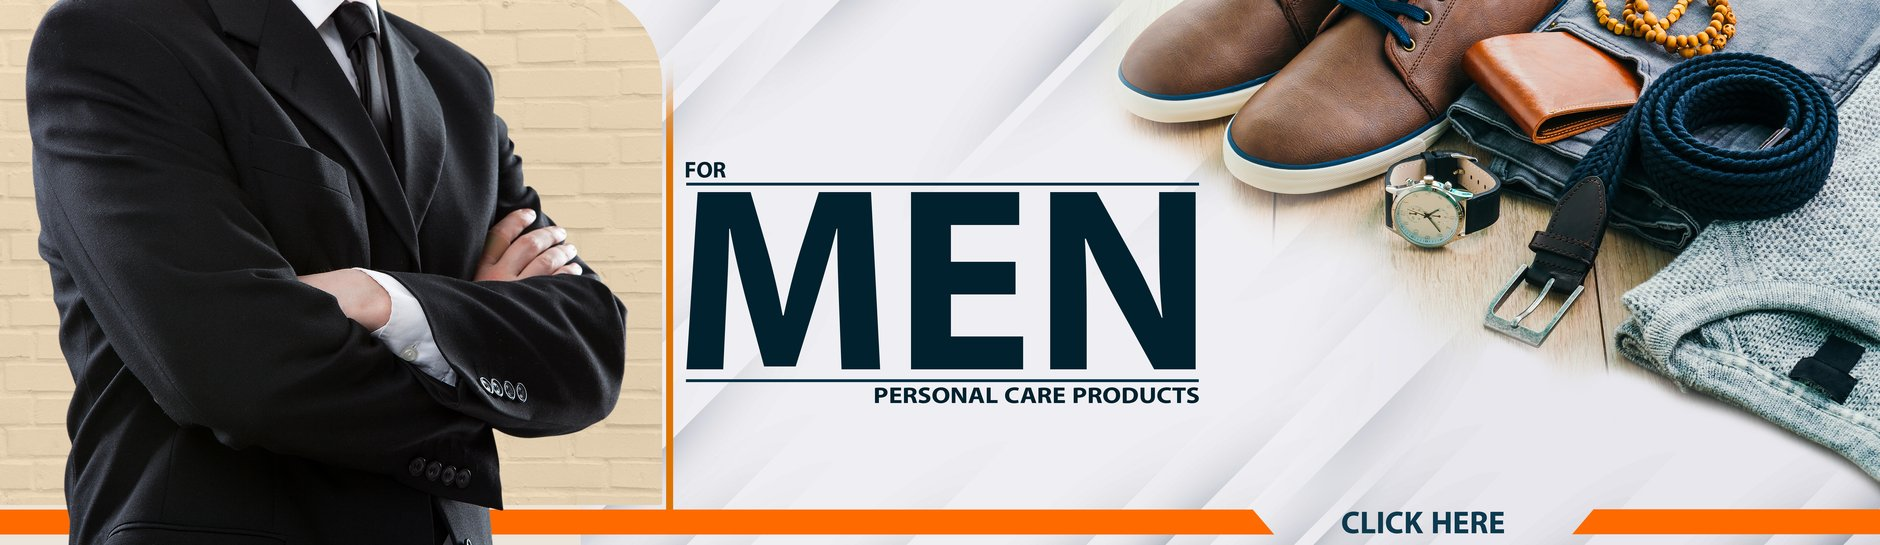 Get men's personal care products at low and attractive prices right at your doorstep only at Getit.qa  | Free cash- card on delivery